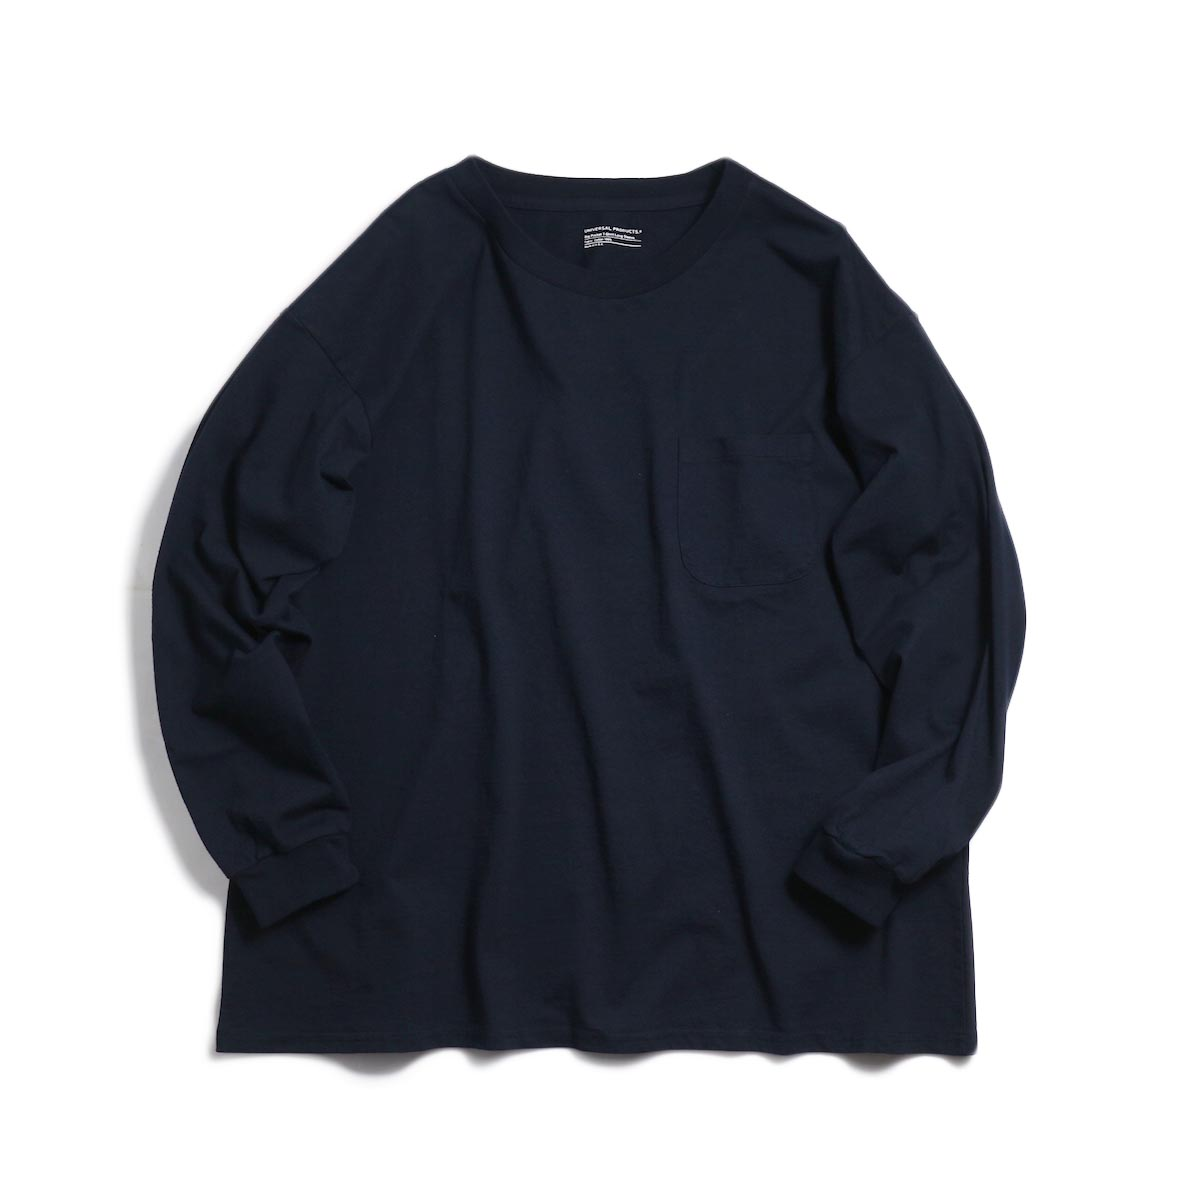 UNIVERSAL PRODUCTS / Heavy Weight L/S T-Shirt -Navy 正面